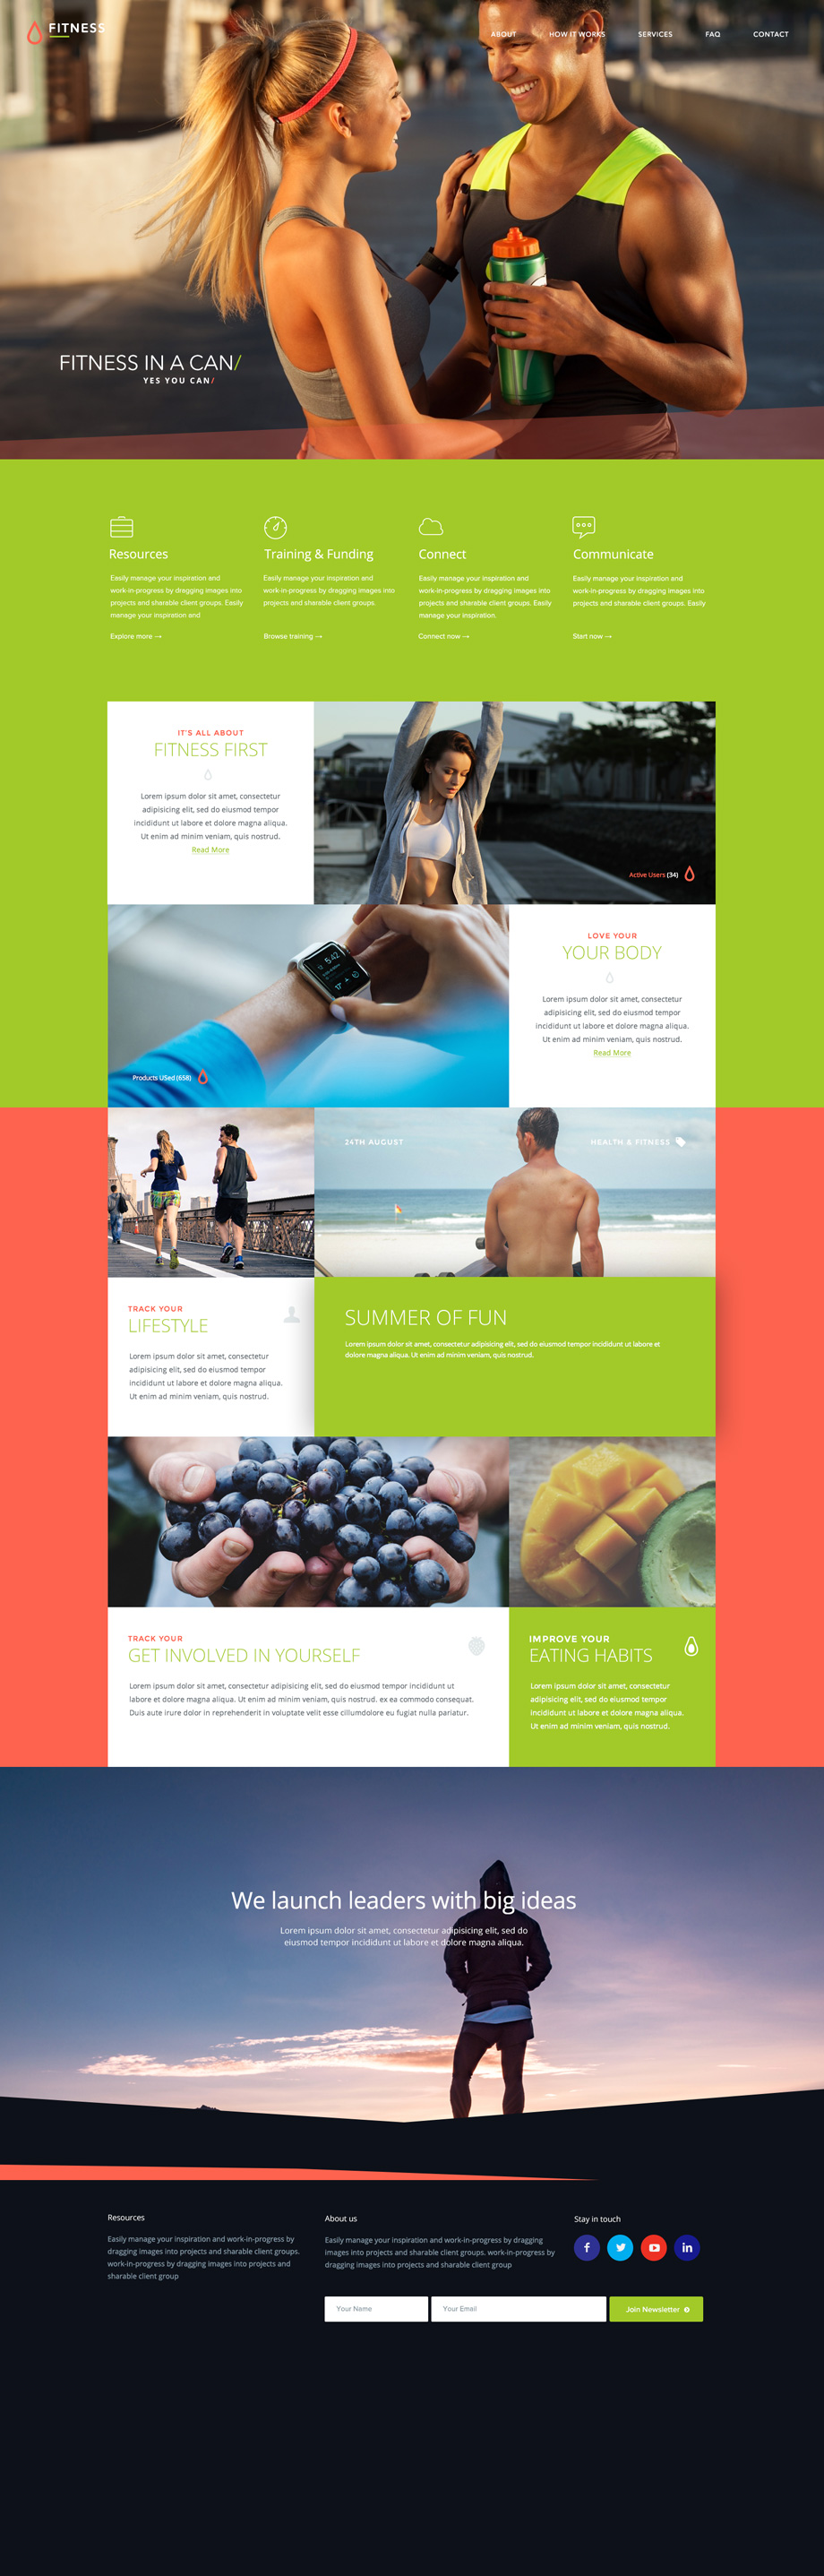 Fitness free Photoshop PSD template